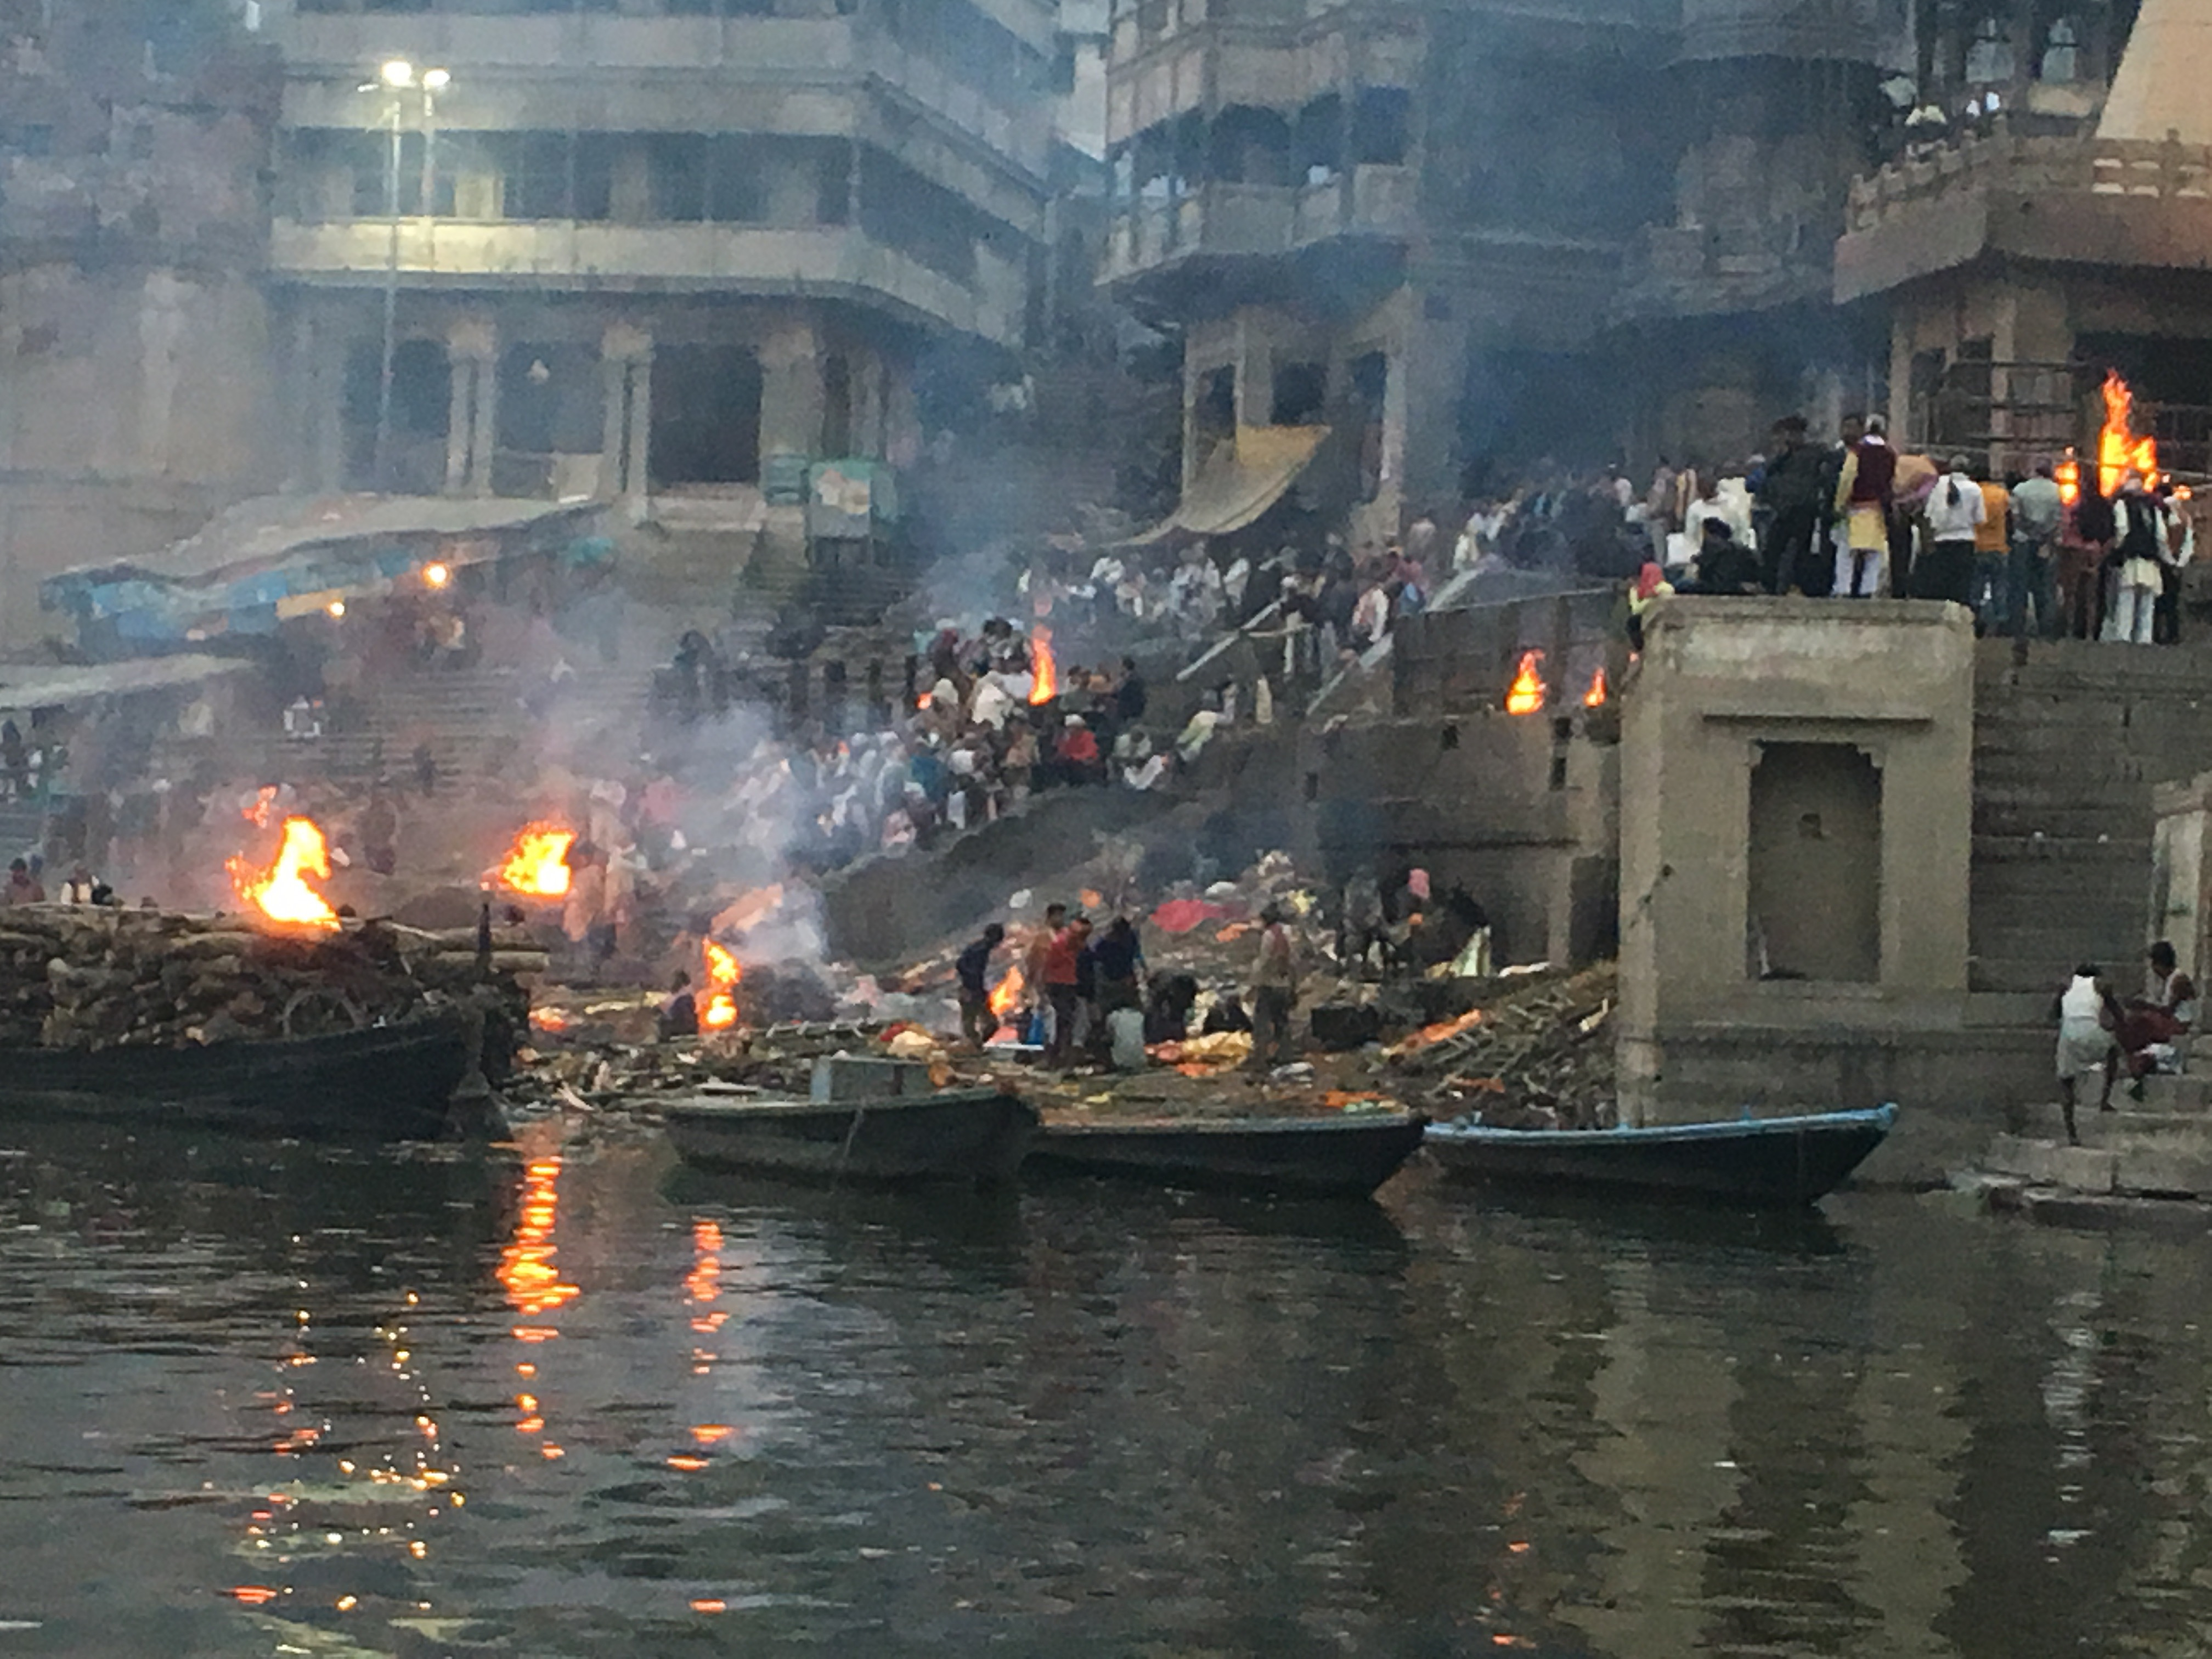 The burning ghat in the Ganges in Varanasi